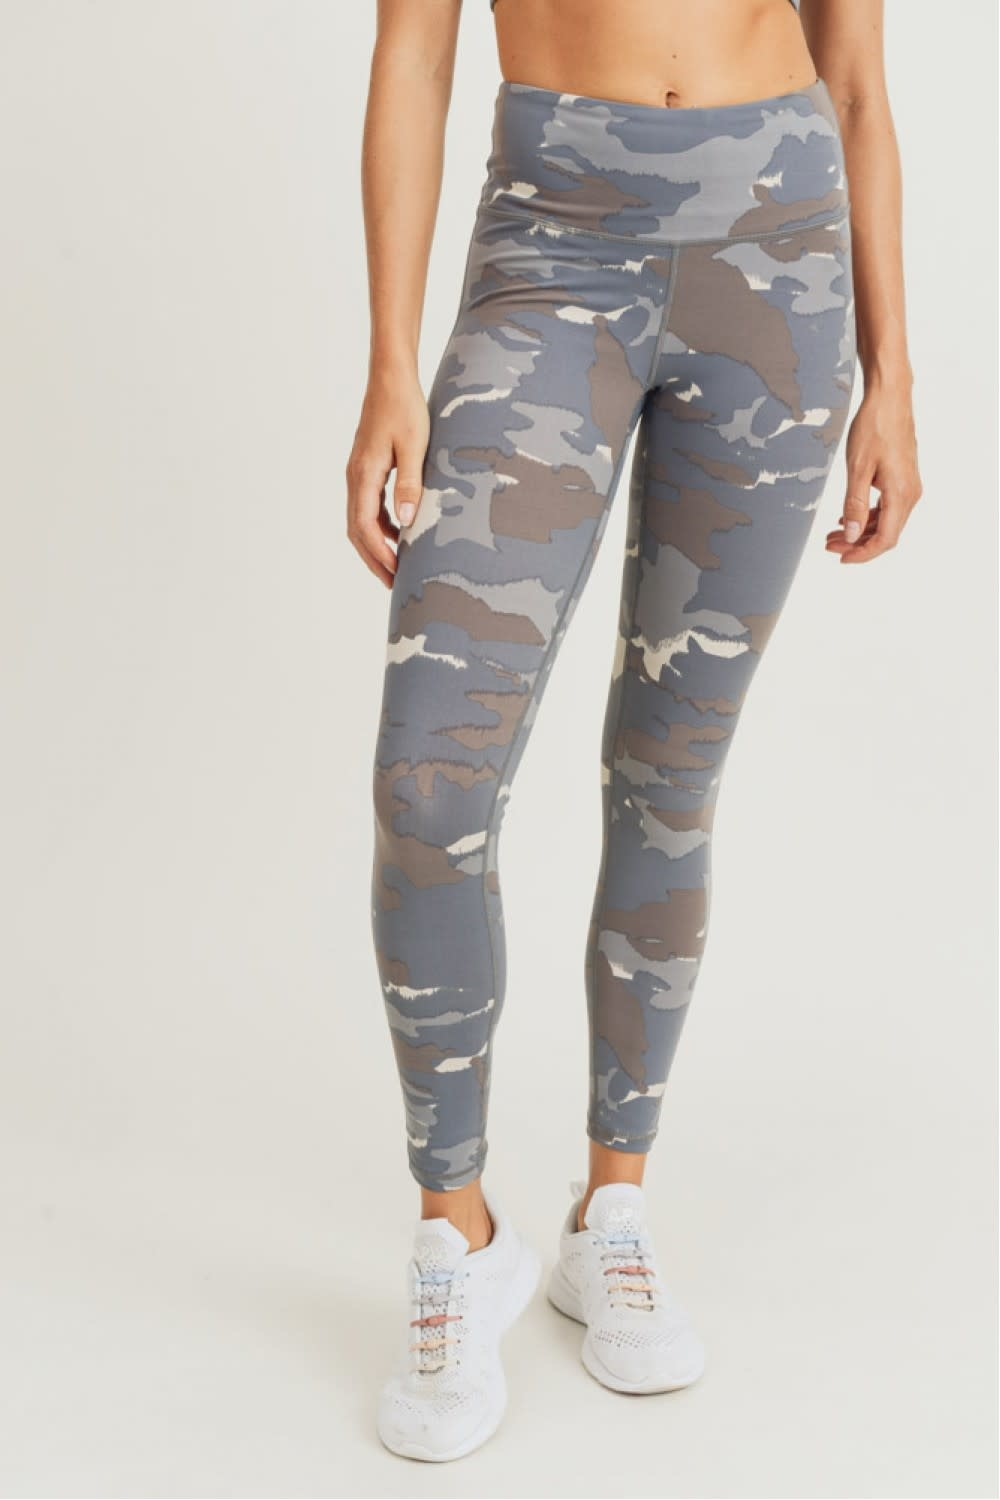 MONO B BLUE TUNDRA HIGH-WAIST LEGGINGS